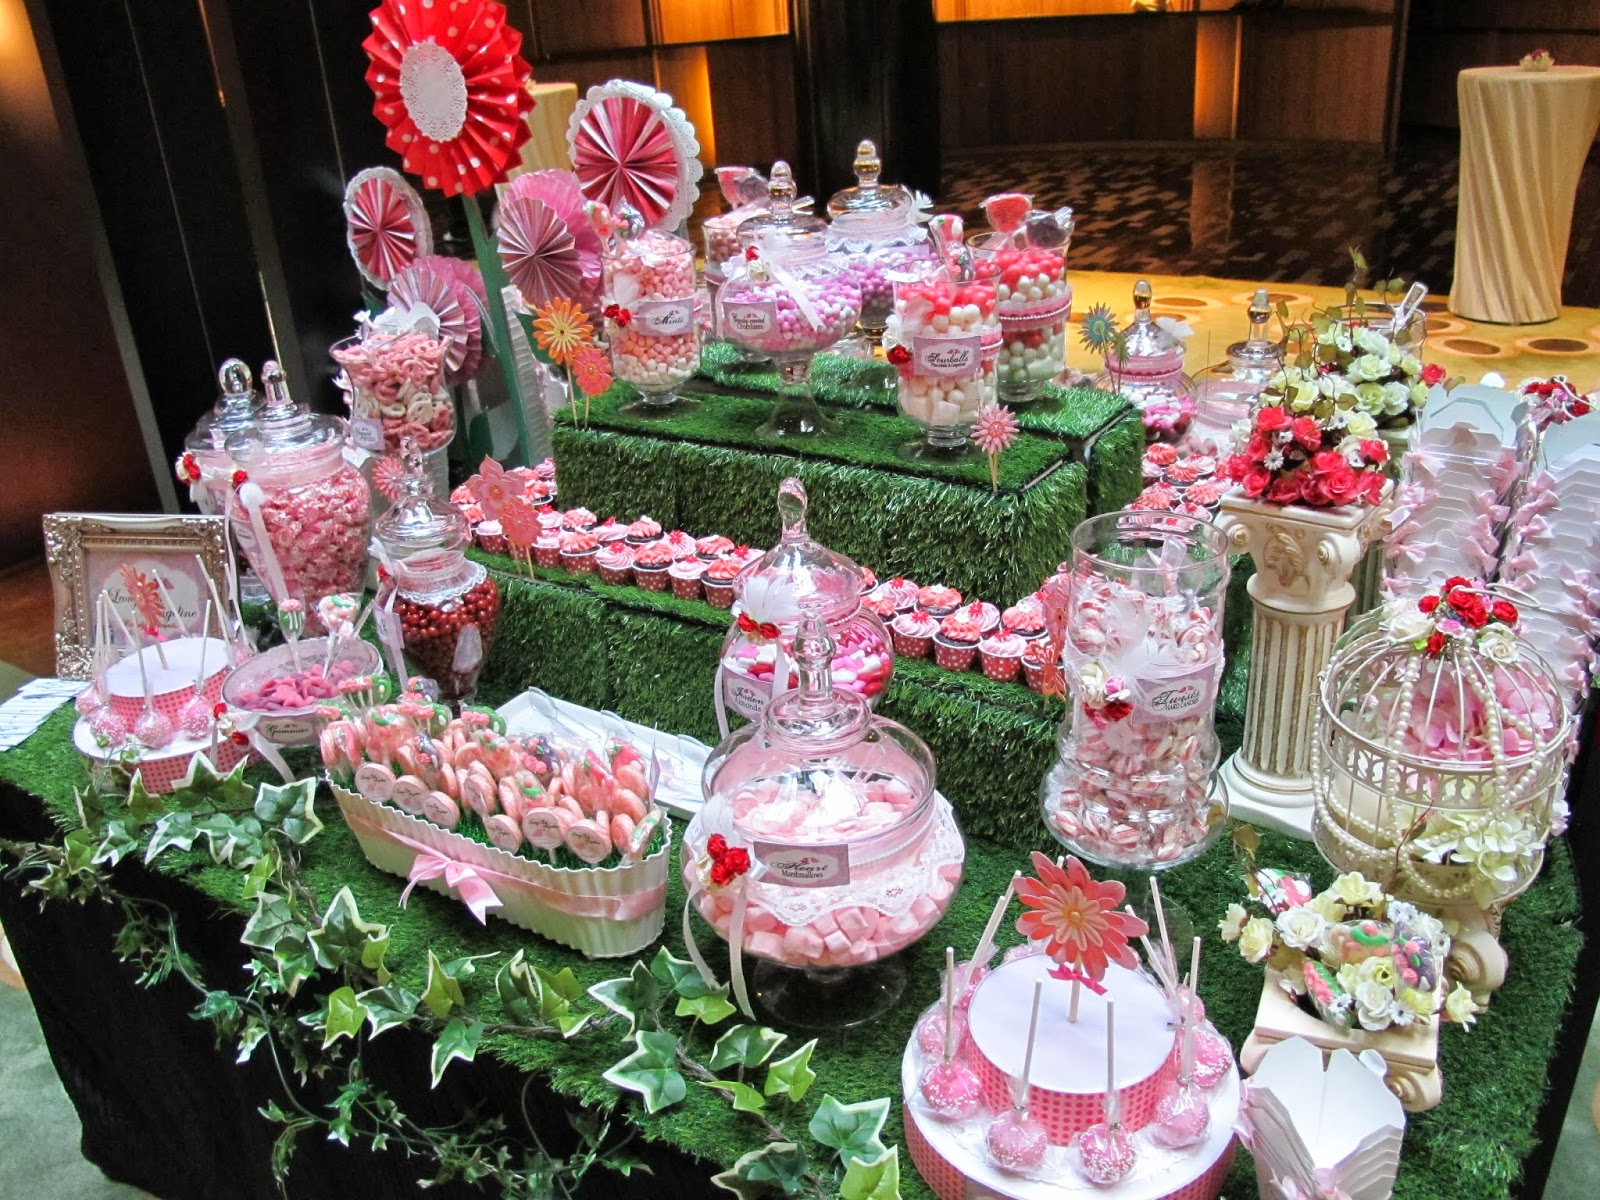 candy garden. And We Absolutely Love The Garden Setup With Mailbox That Wedding Couple Had Prepared! Candy